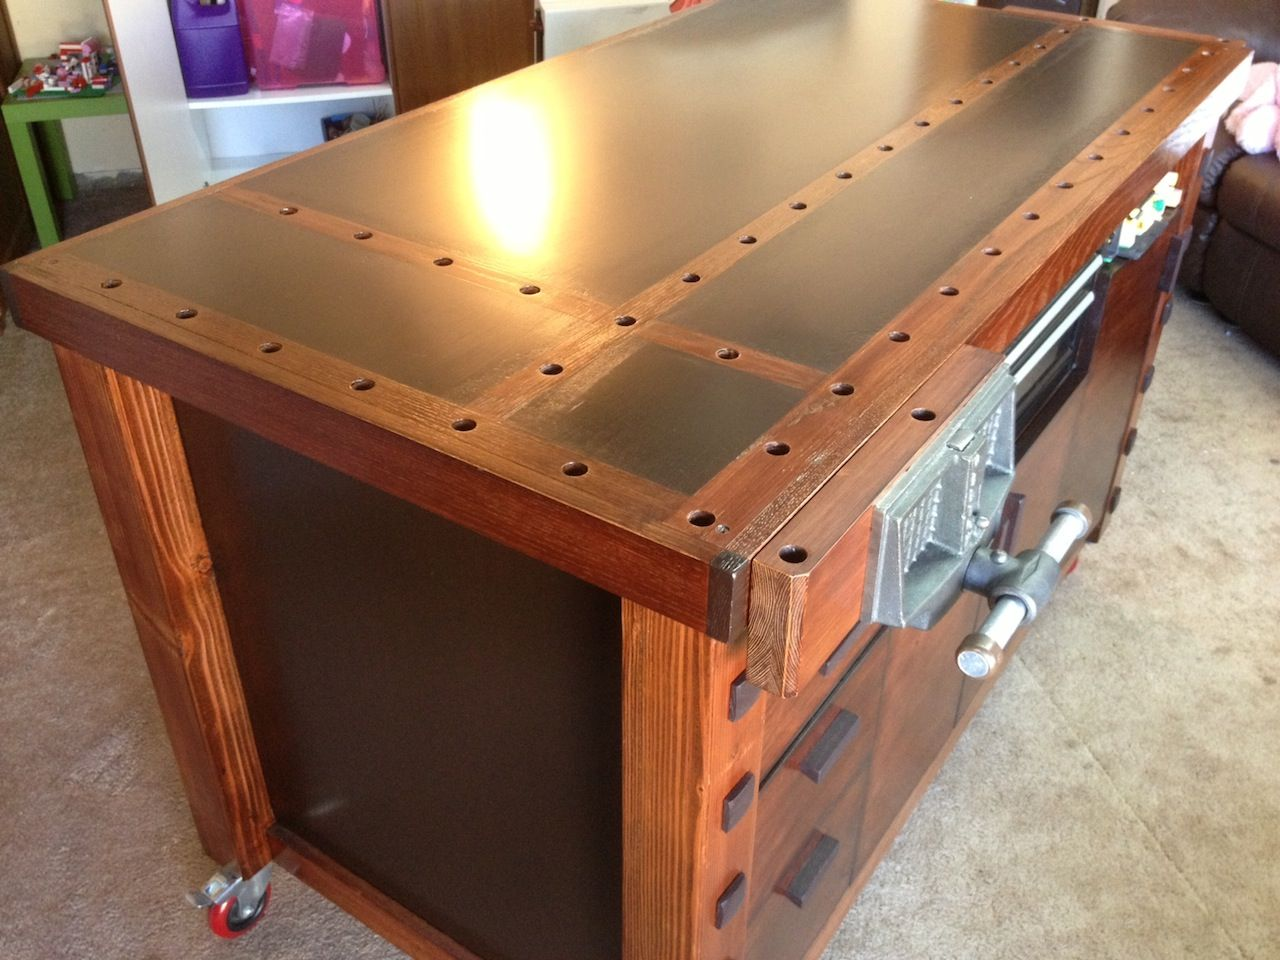 Assembly Tables Workstations : Workbench assembly table woodworking pinterest